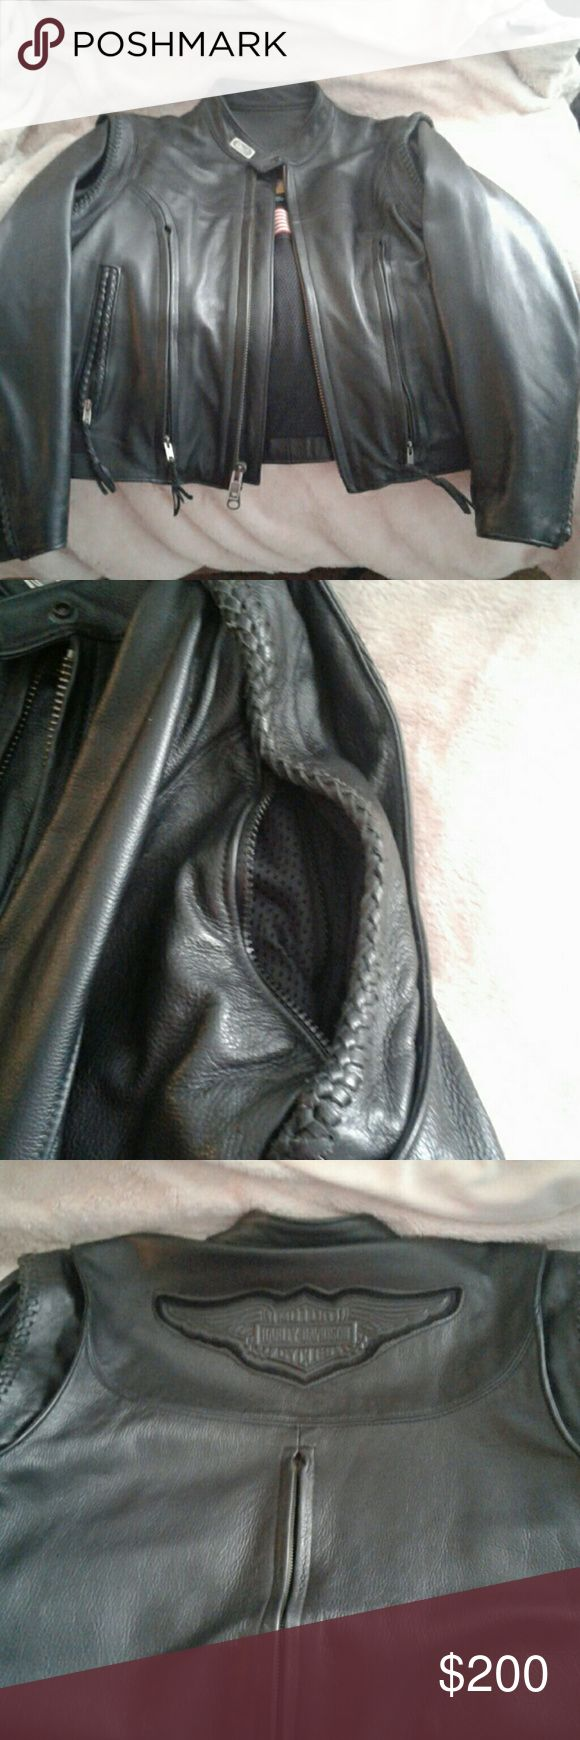 Harley Davidson women's leather riding jacket Perfect condition HD leather riding jacket. Sleeves can be removed so it is like a vest (2nd pic shows zip out option) pic 3 shows back of jacket with vent and Harley Davidson. Also has a zip out liner as shown in pic 4. Love this jacket but I have started wearing a different style of jacket. Size is a woman's XL. Sorry not part of a bundle. Harley-Davidson Jackets & Coats